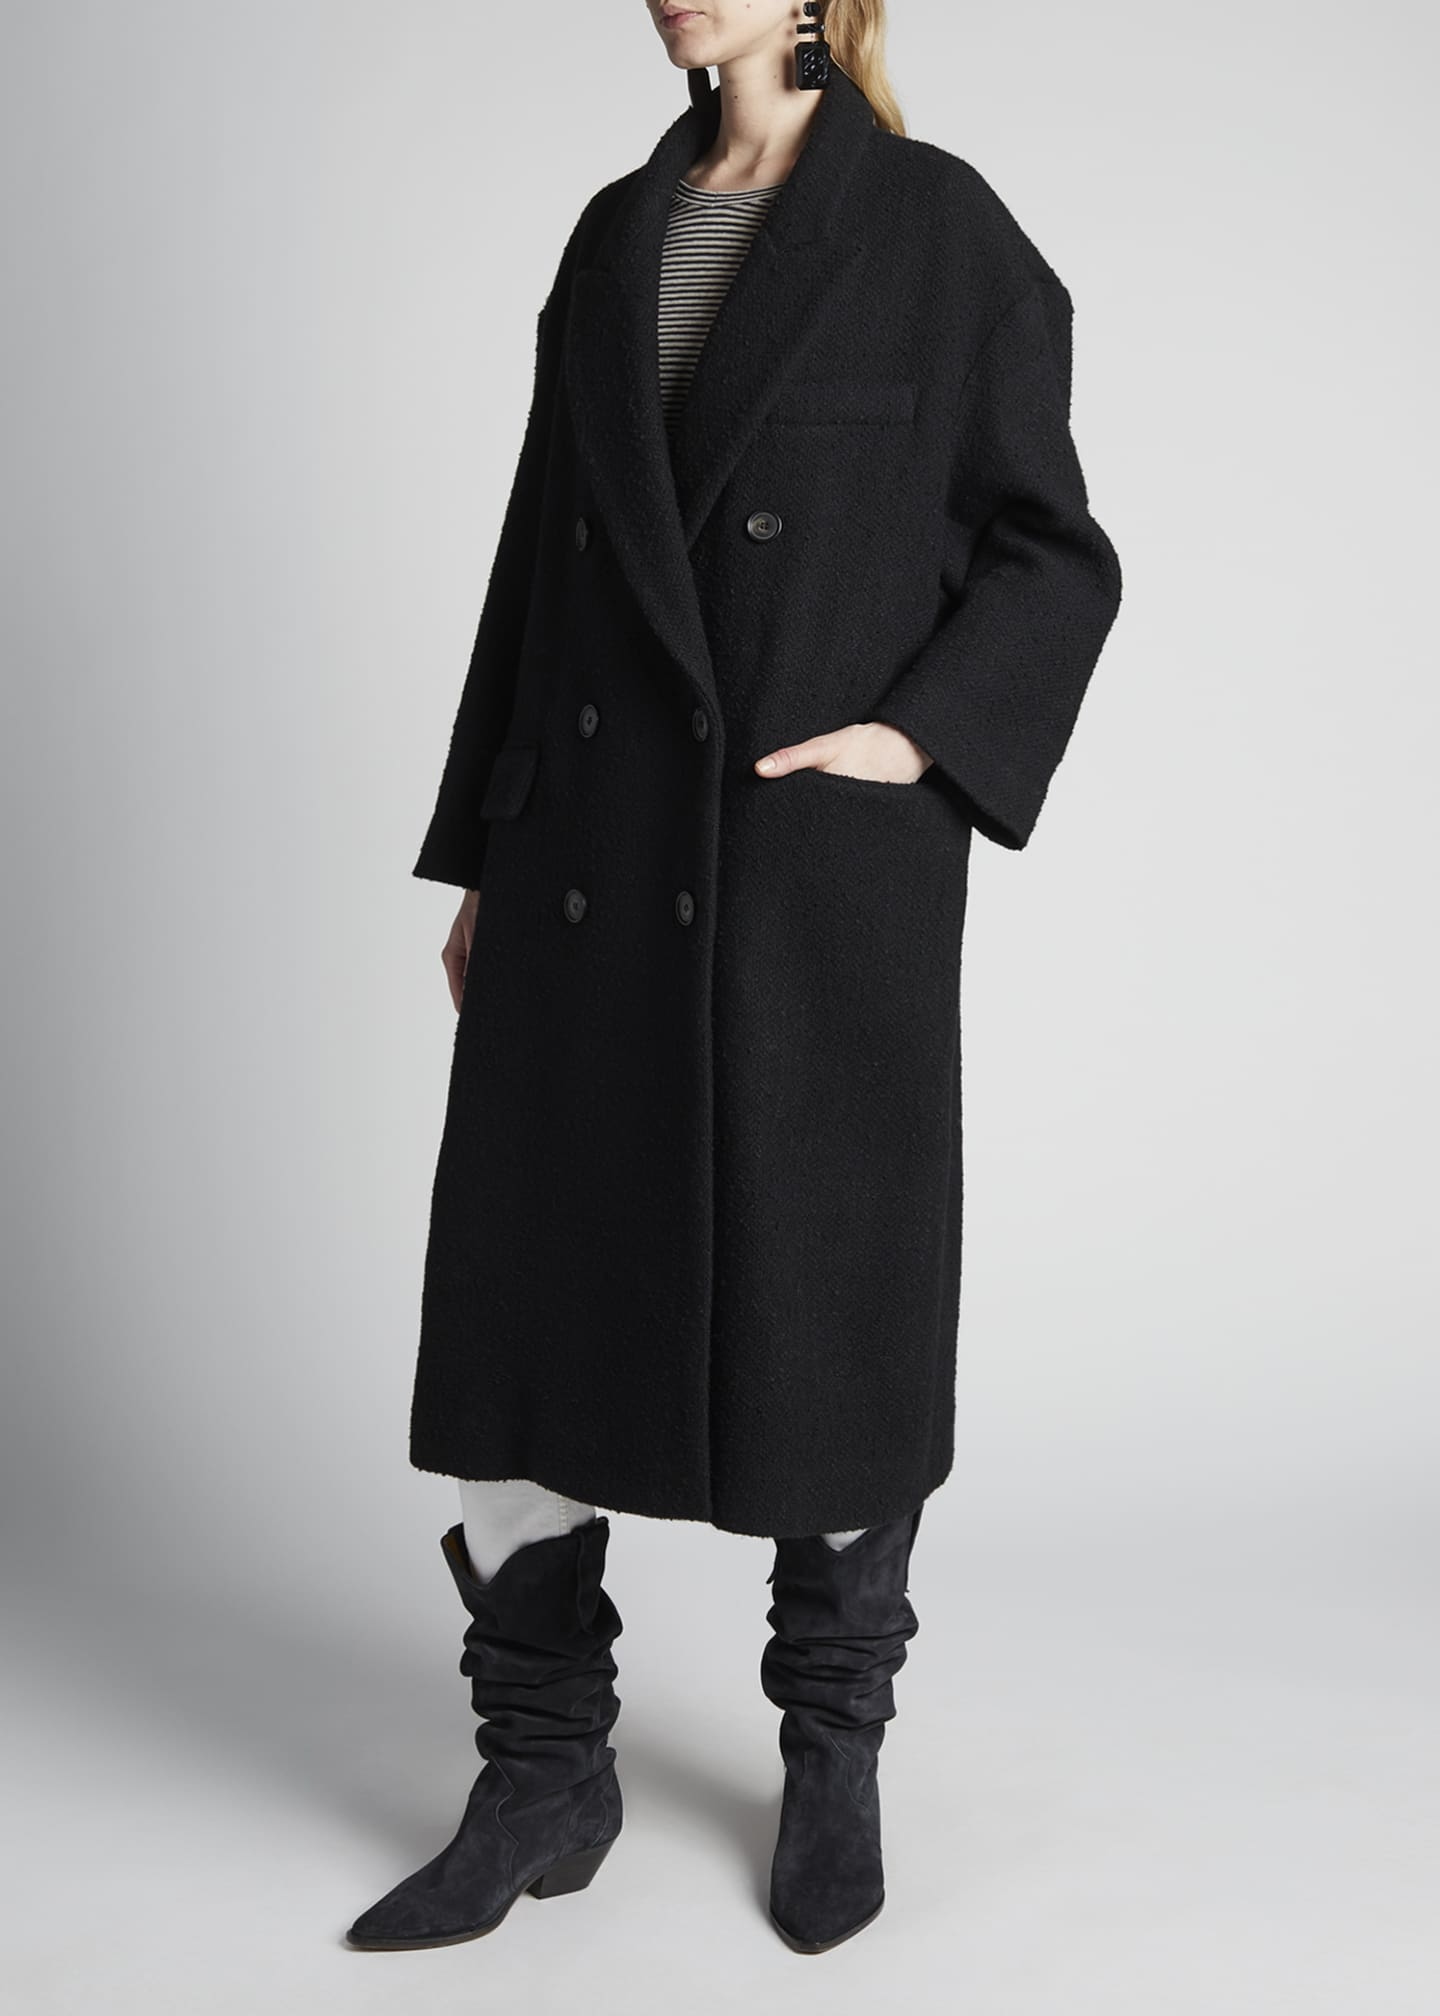 Image 4 of 4: Ojima Wool Double-Breasted Coat